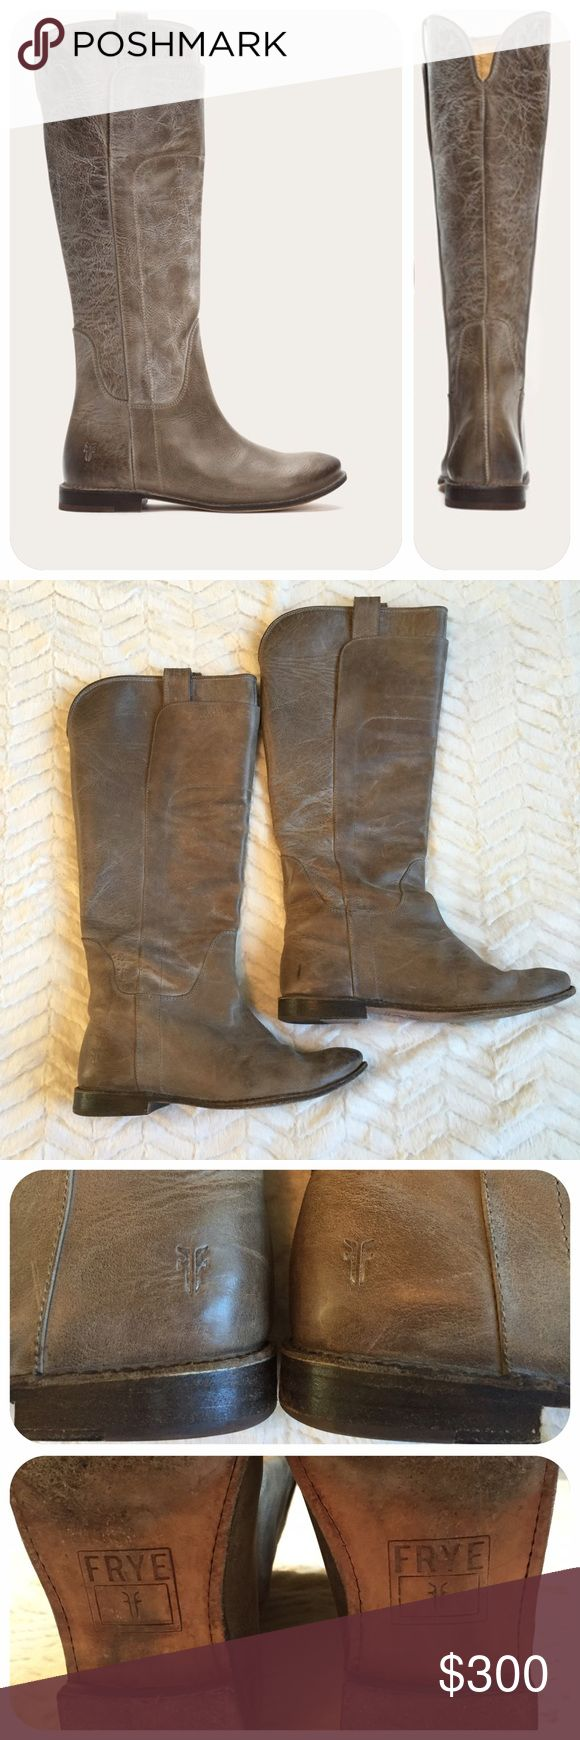 """Frye Paige Tall Riding Boots Grey These have been worn a few times. If you are familiar with Frye boots you know they wear amazingly and look better with some wear.   With overlapping front panels and intricate stitching, this standout riding boot boasts a unique, artisanal look. Made of beautiful full grain leather. Mini-pull tabs and notched back are just some of the finer details.  - Leather lined - Leather outsole - 14 1/2"""" shaft height - 14 3/4"""" shaft circumference - 1"""" heel height…"""